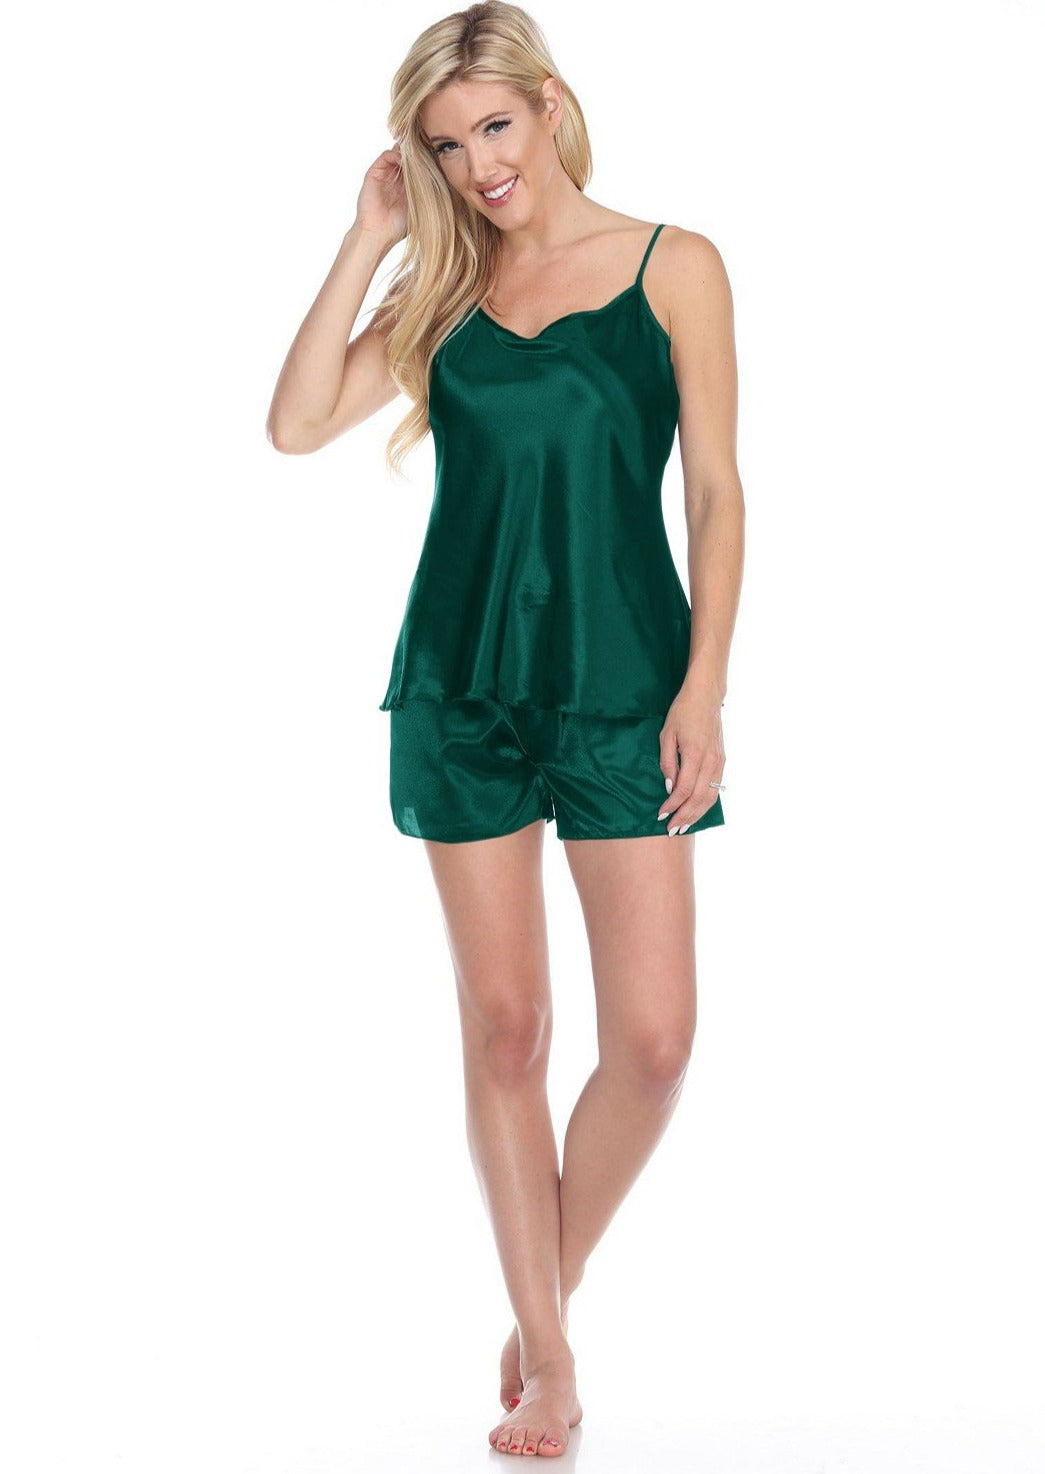 Spaghetti Top and Shorts Set for Women - Emerald Green